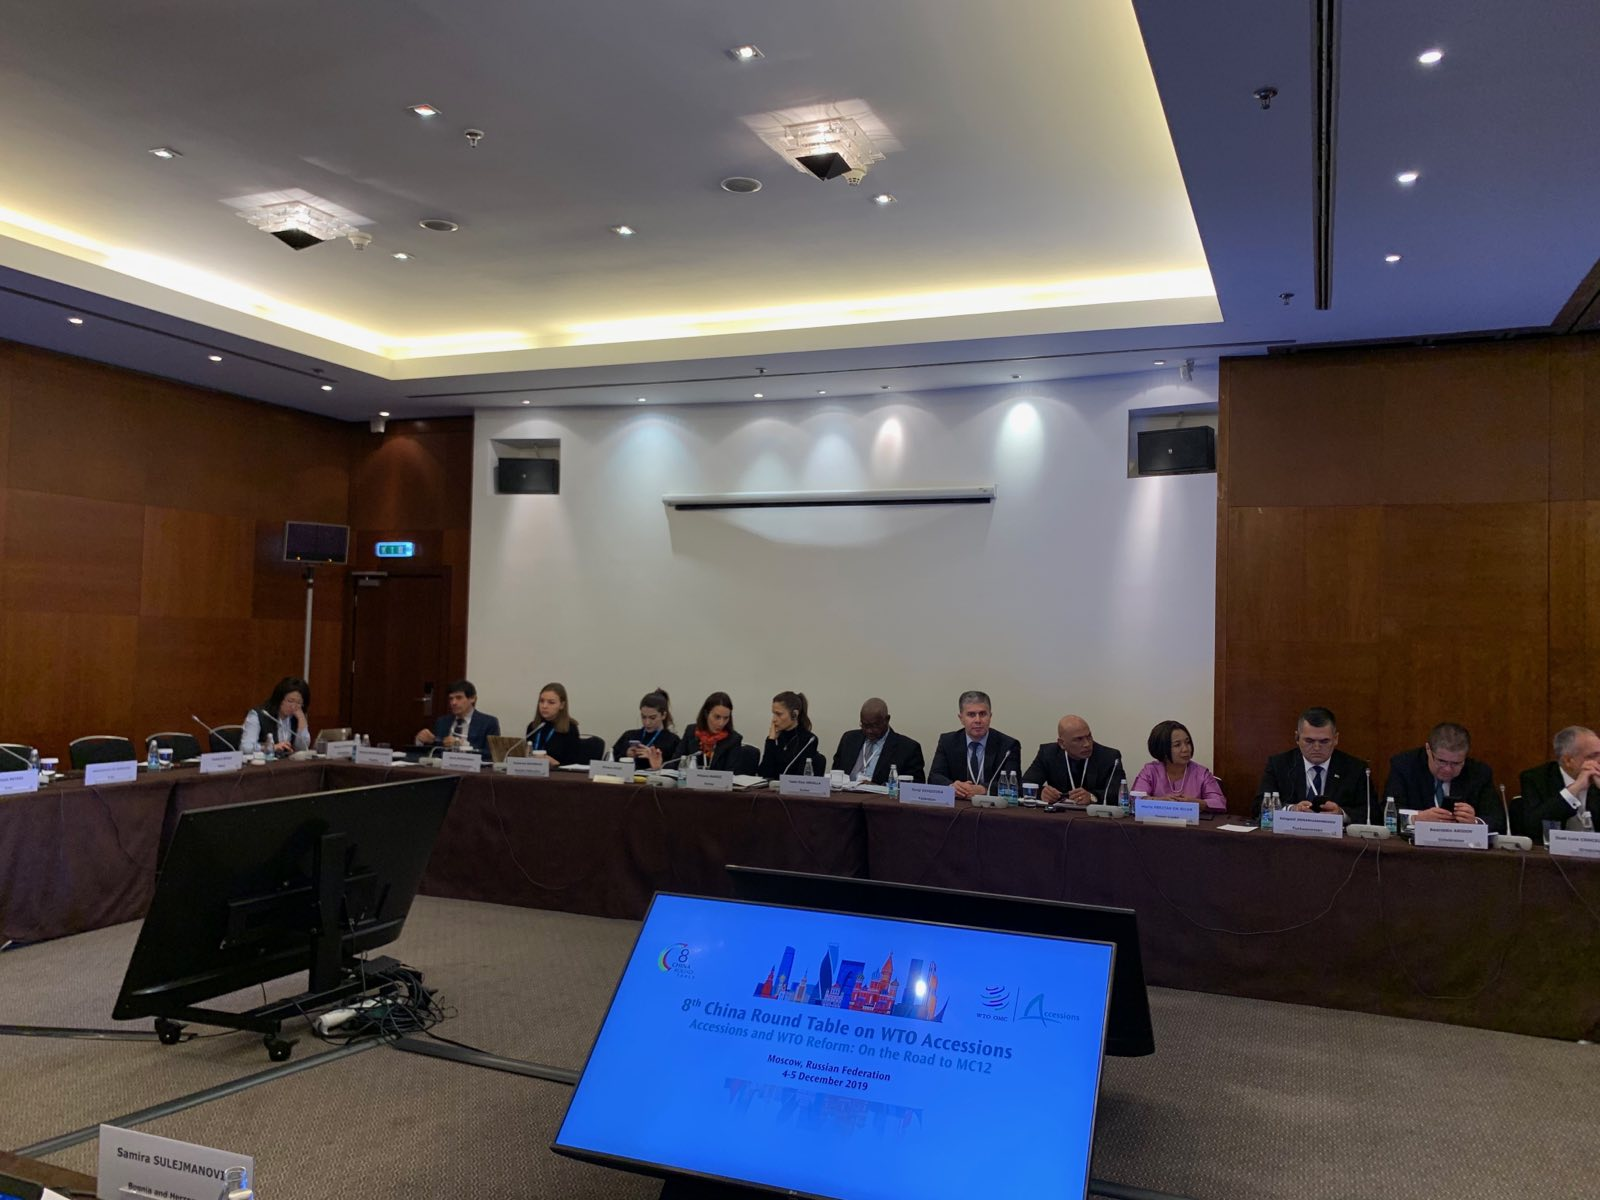 Tajikistan's position on trade initiatives of the World Trade Organization (WTO) were presented in the 8th China Round Table